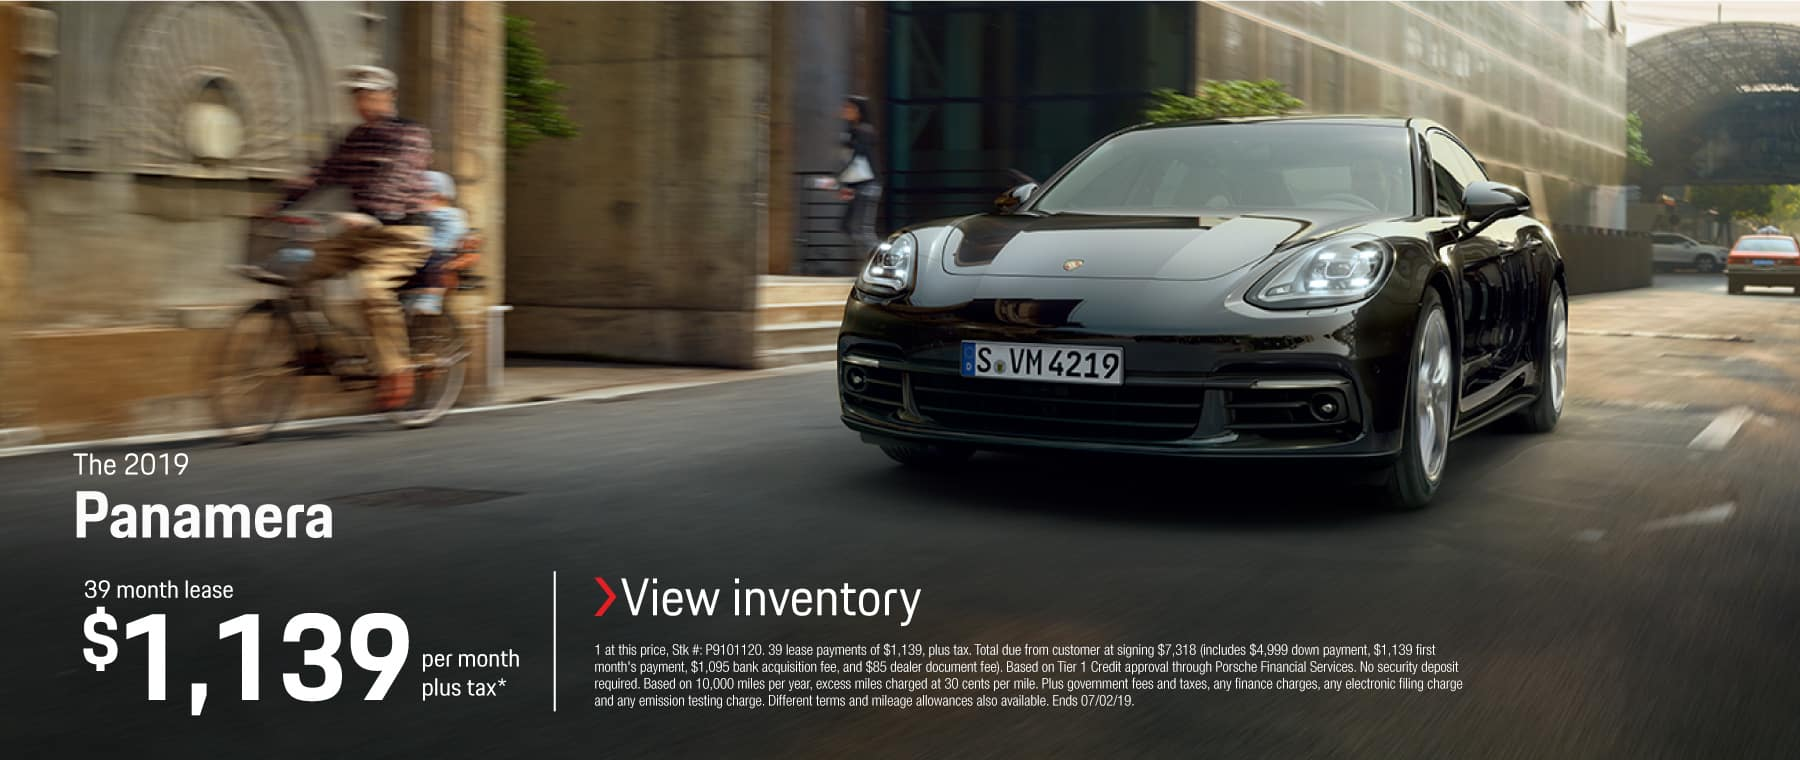 2019 Panamera 39 month lease $1139 per month plus tax